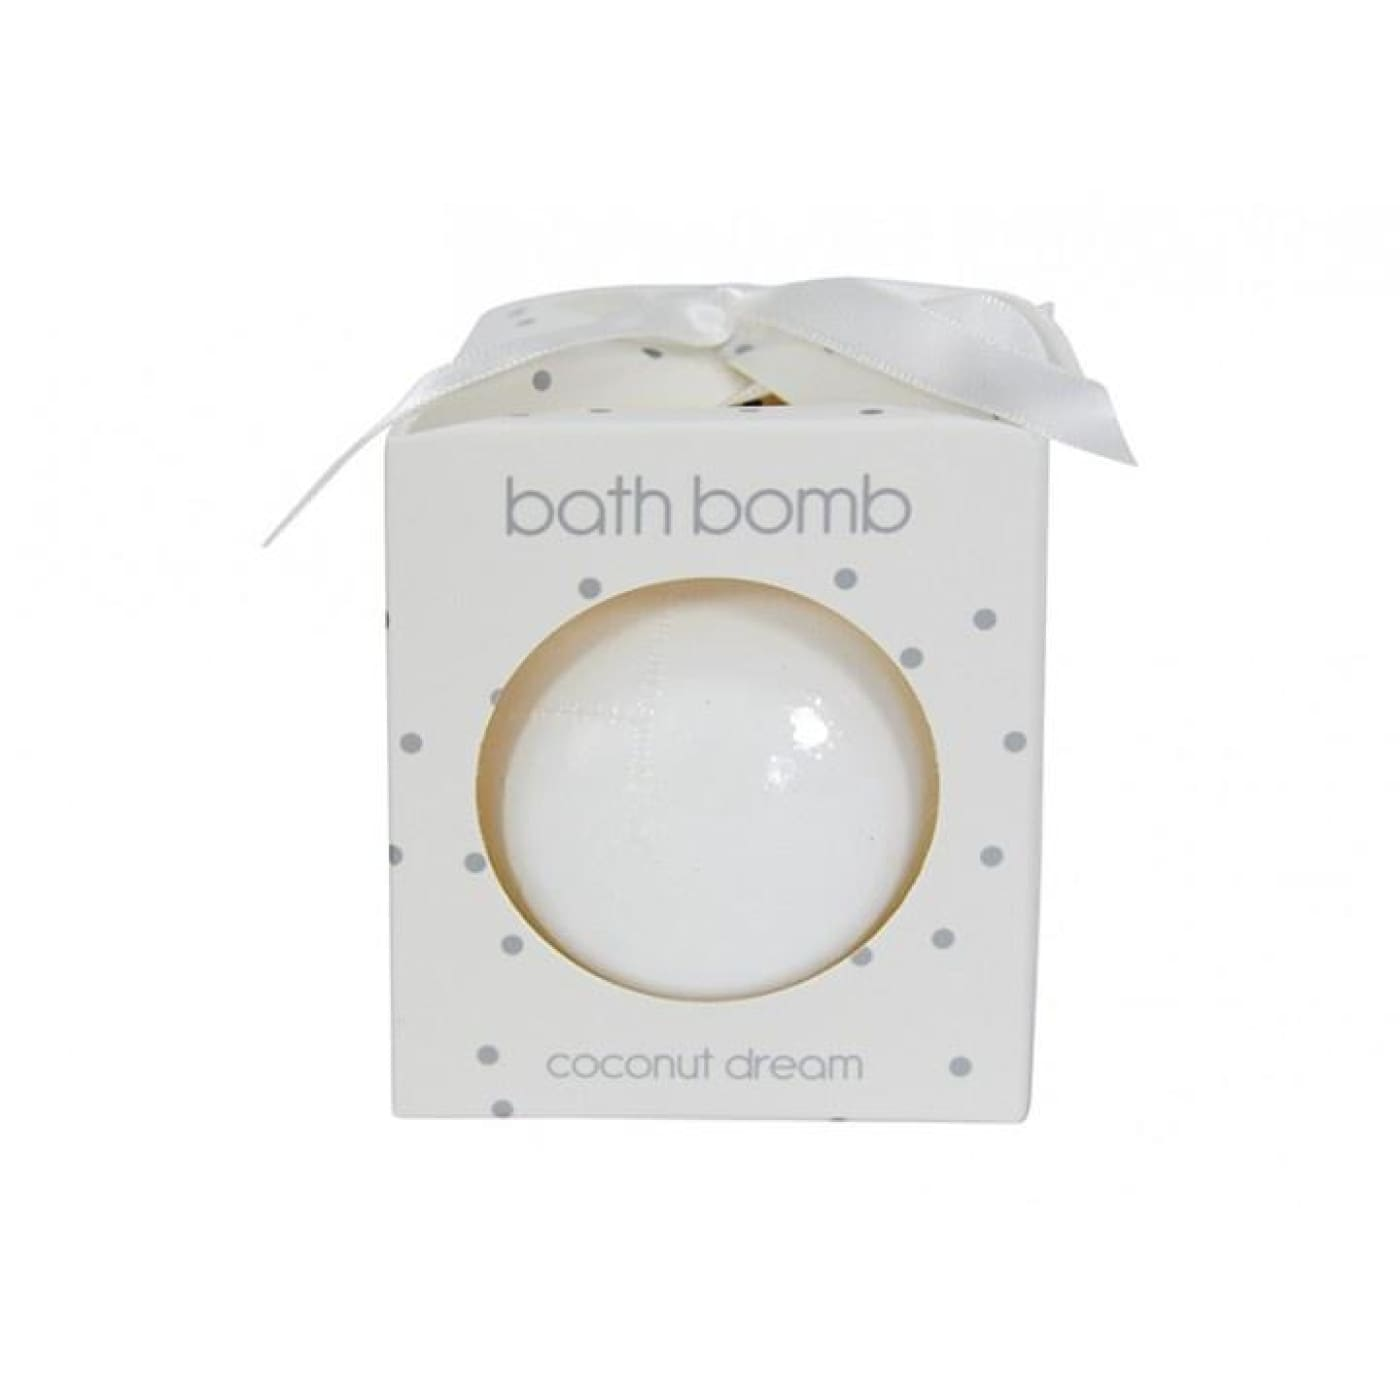 Annabel Trends Bath Bomb - Coconut Dream 150G - 150g / Coconut Dream - FOR MUM - COSMETICS/GROOMING